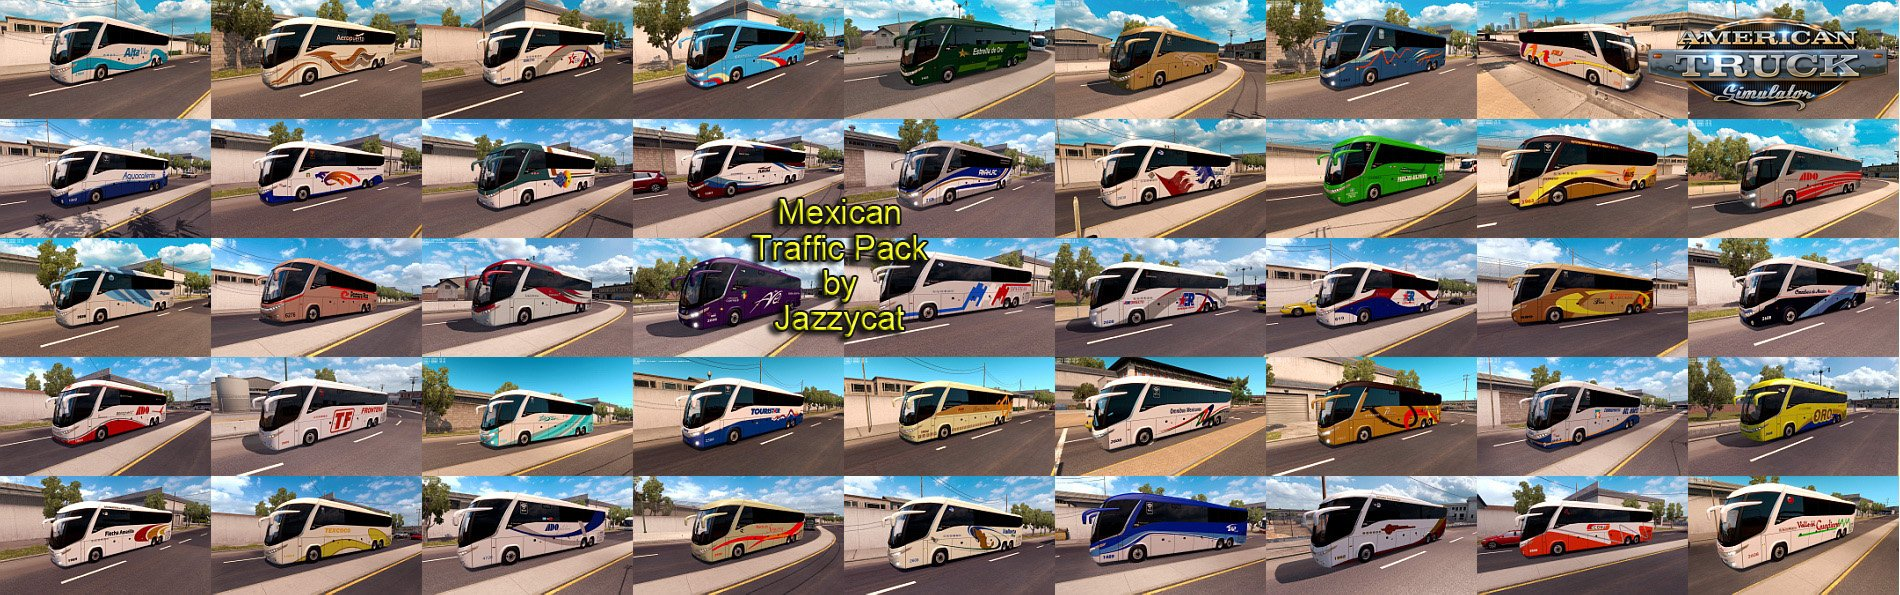 Mexican Traffic Pack v1.2 for Ats